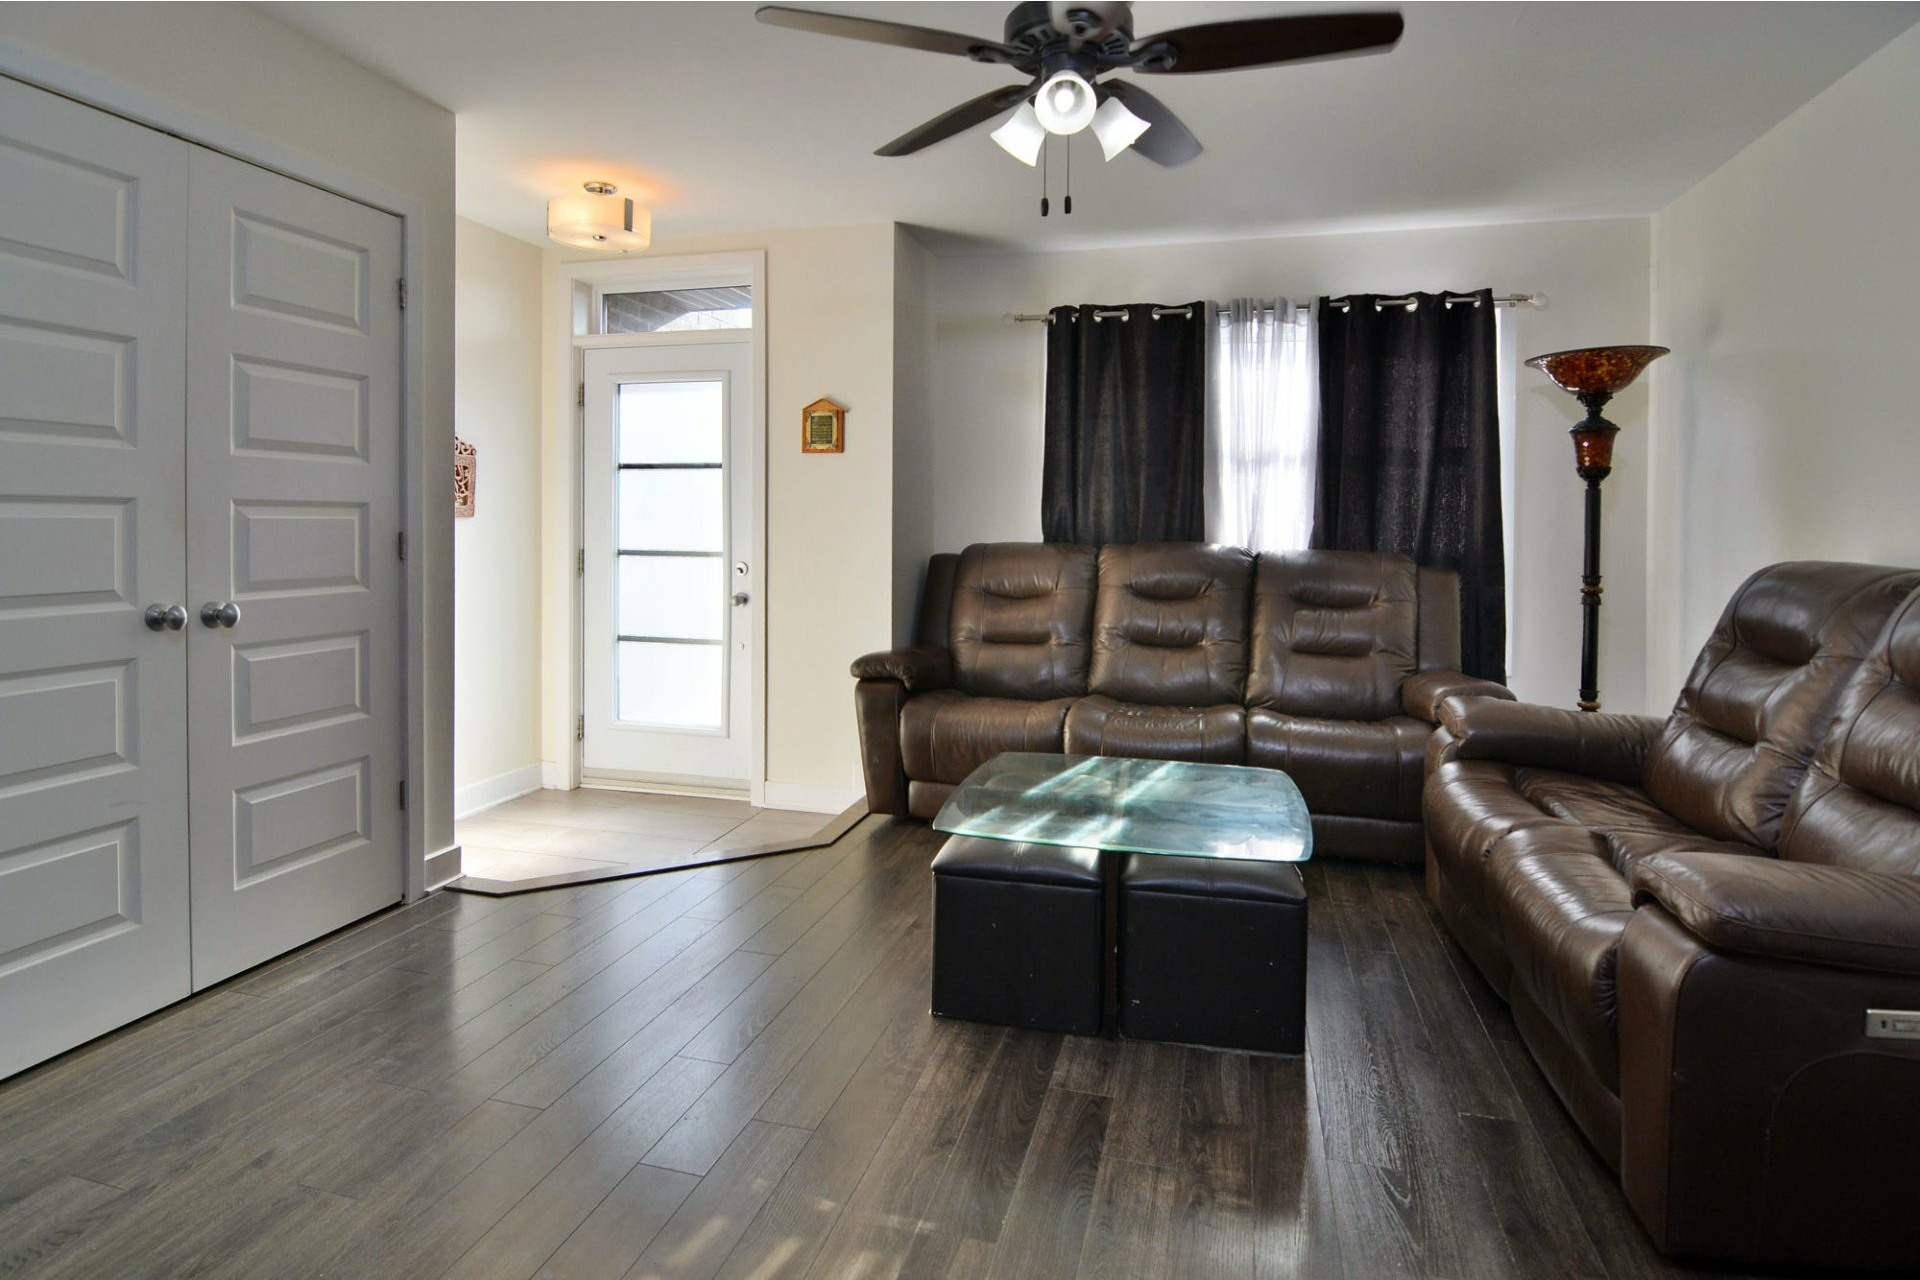 image 3 - House For sale Vaudreuil-Dorion - 7 rooms